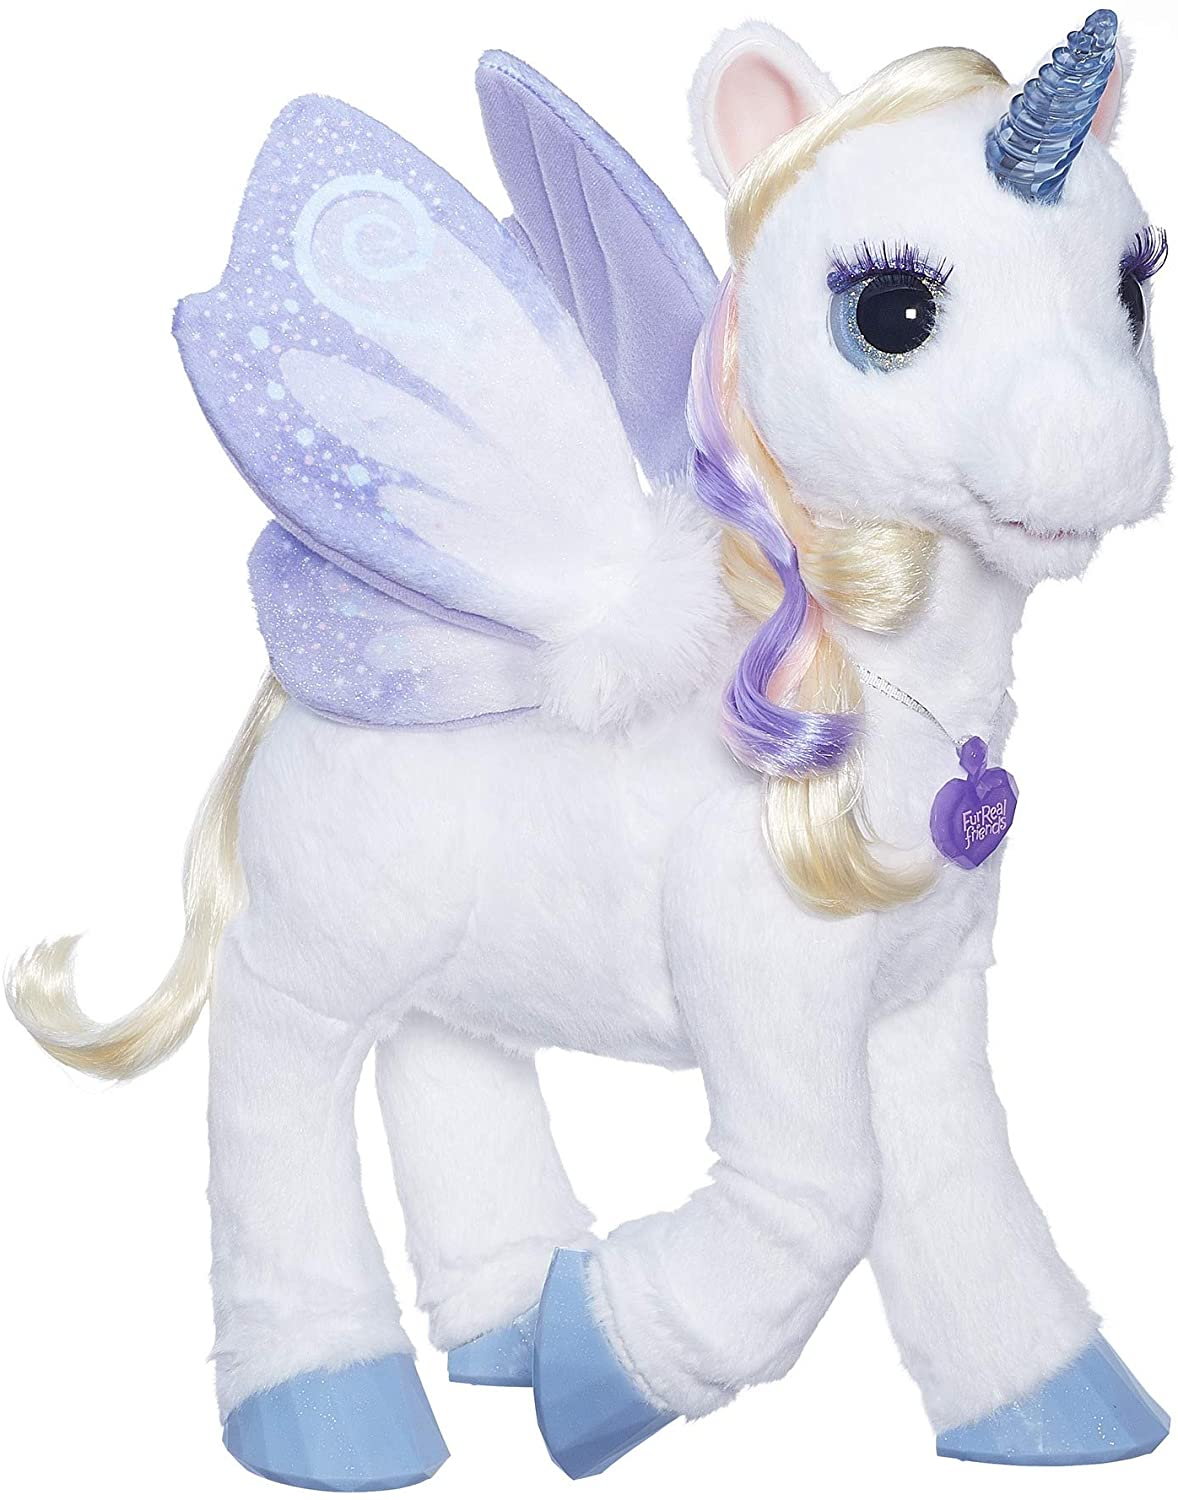 Top 15 Best Unicorn Toys And Gift For Girls in 2020 12